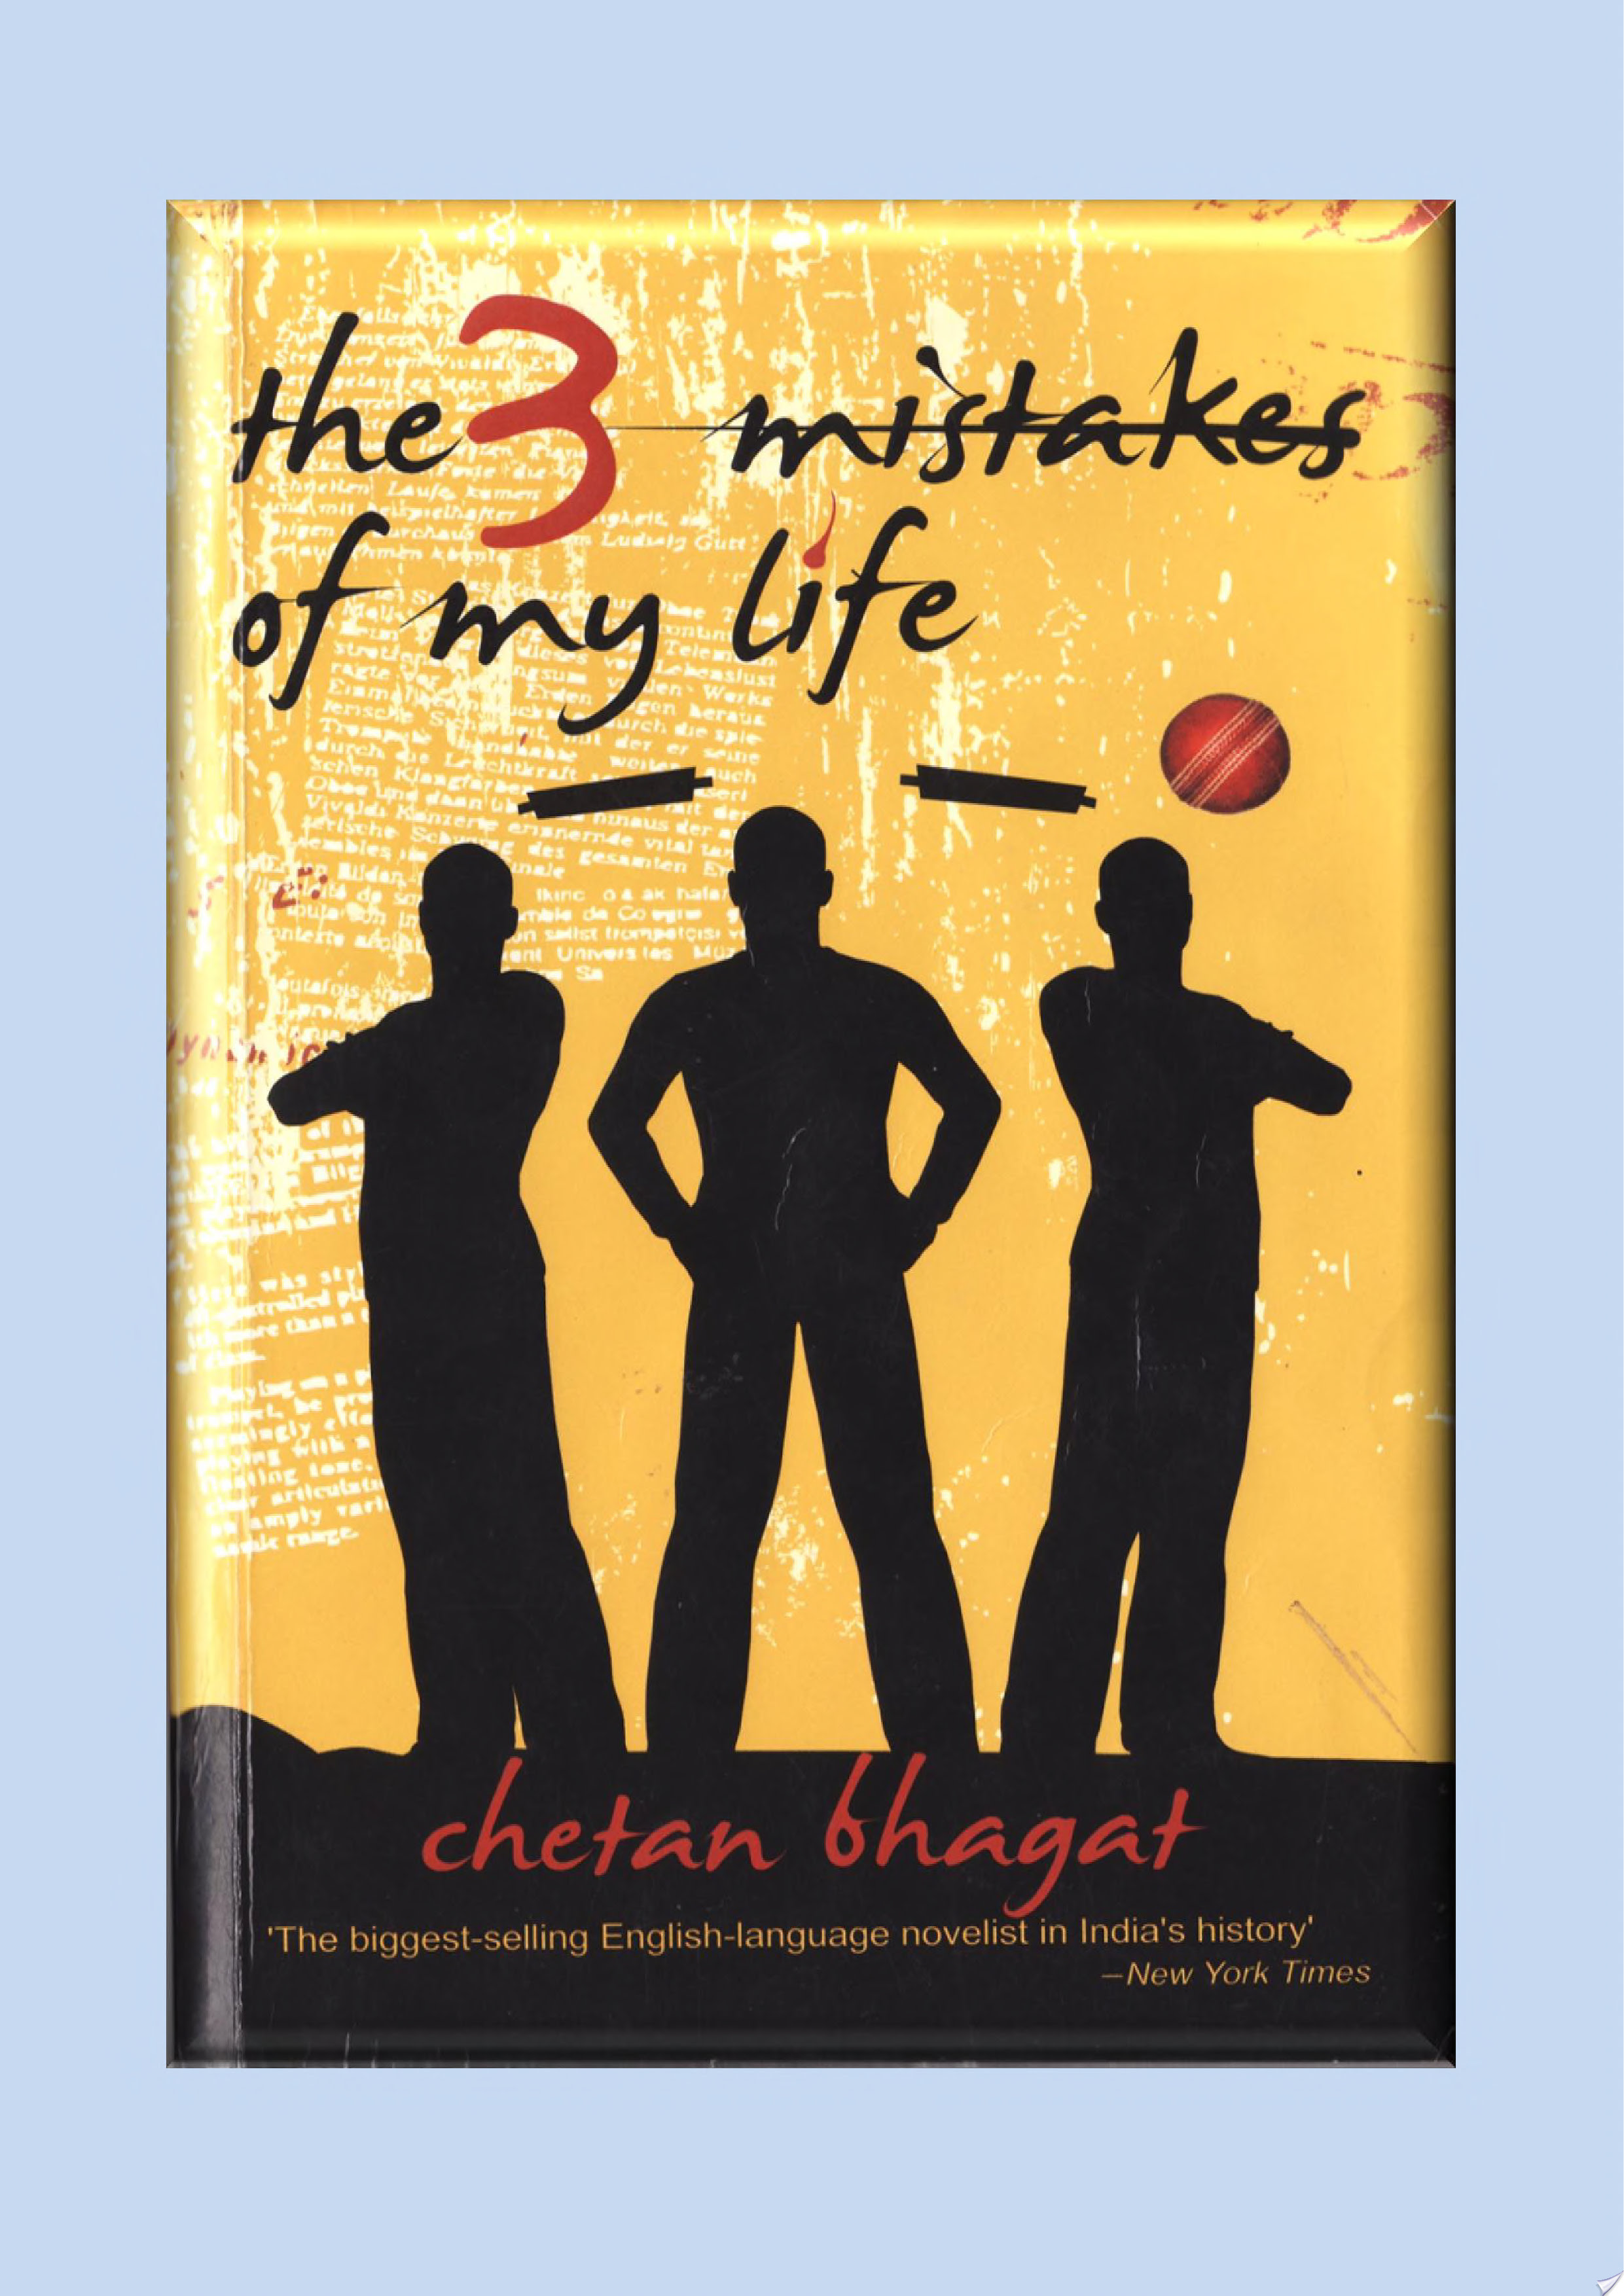 My Life Quotes Quotes Of Three Mistakes Of My Life  Quotesaga